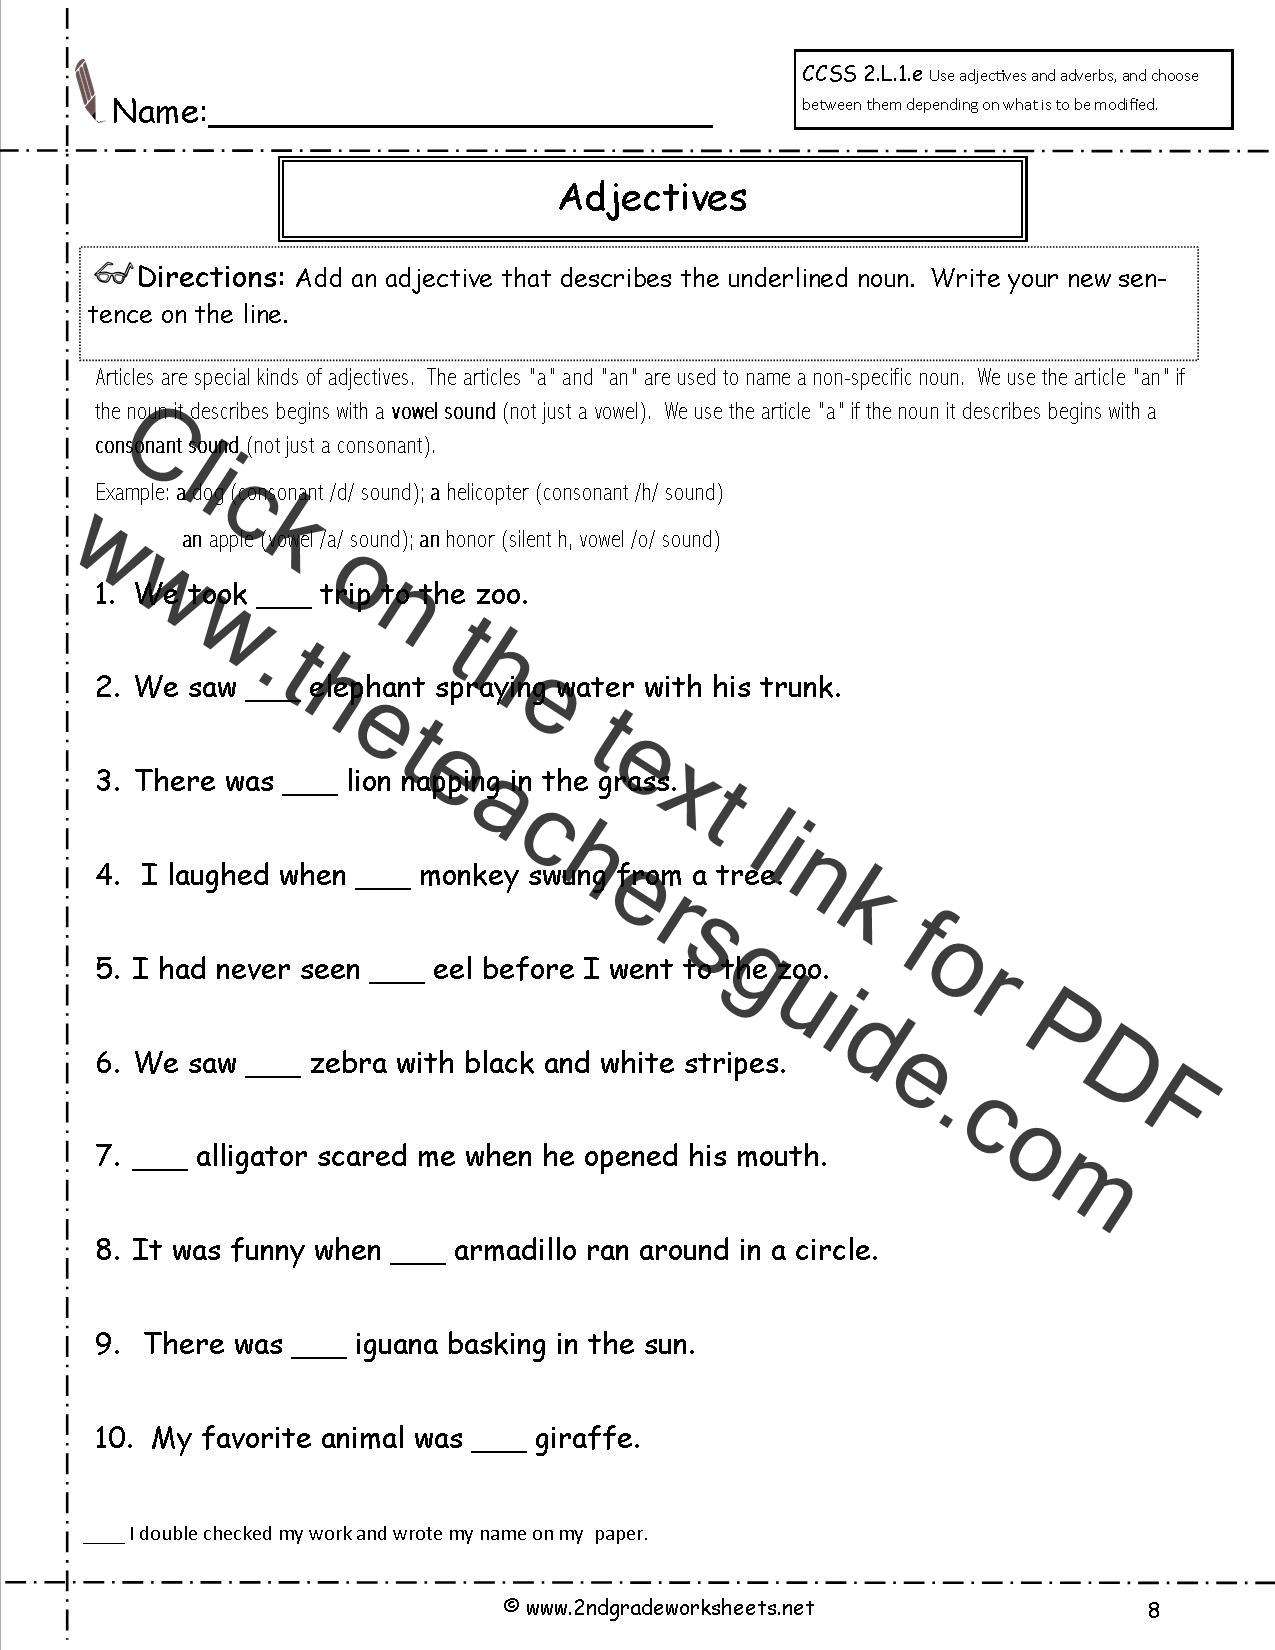 worksheet 2nd Grade Writing Worksheets free languagegrammar worksheets and printouts adjectives worksheets